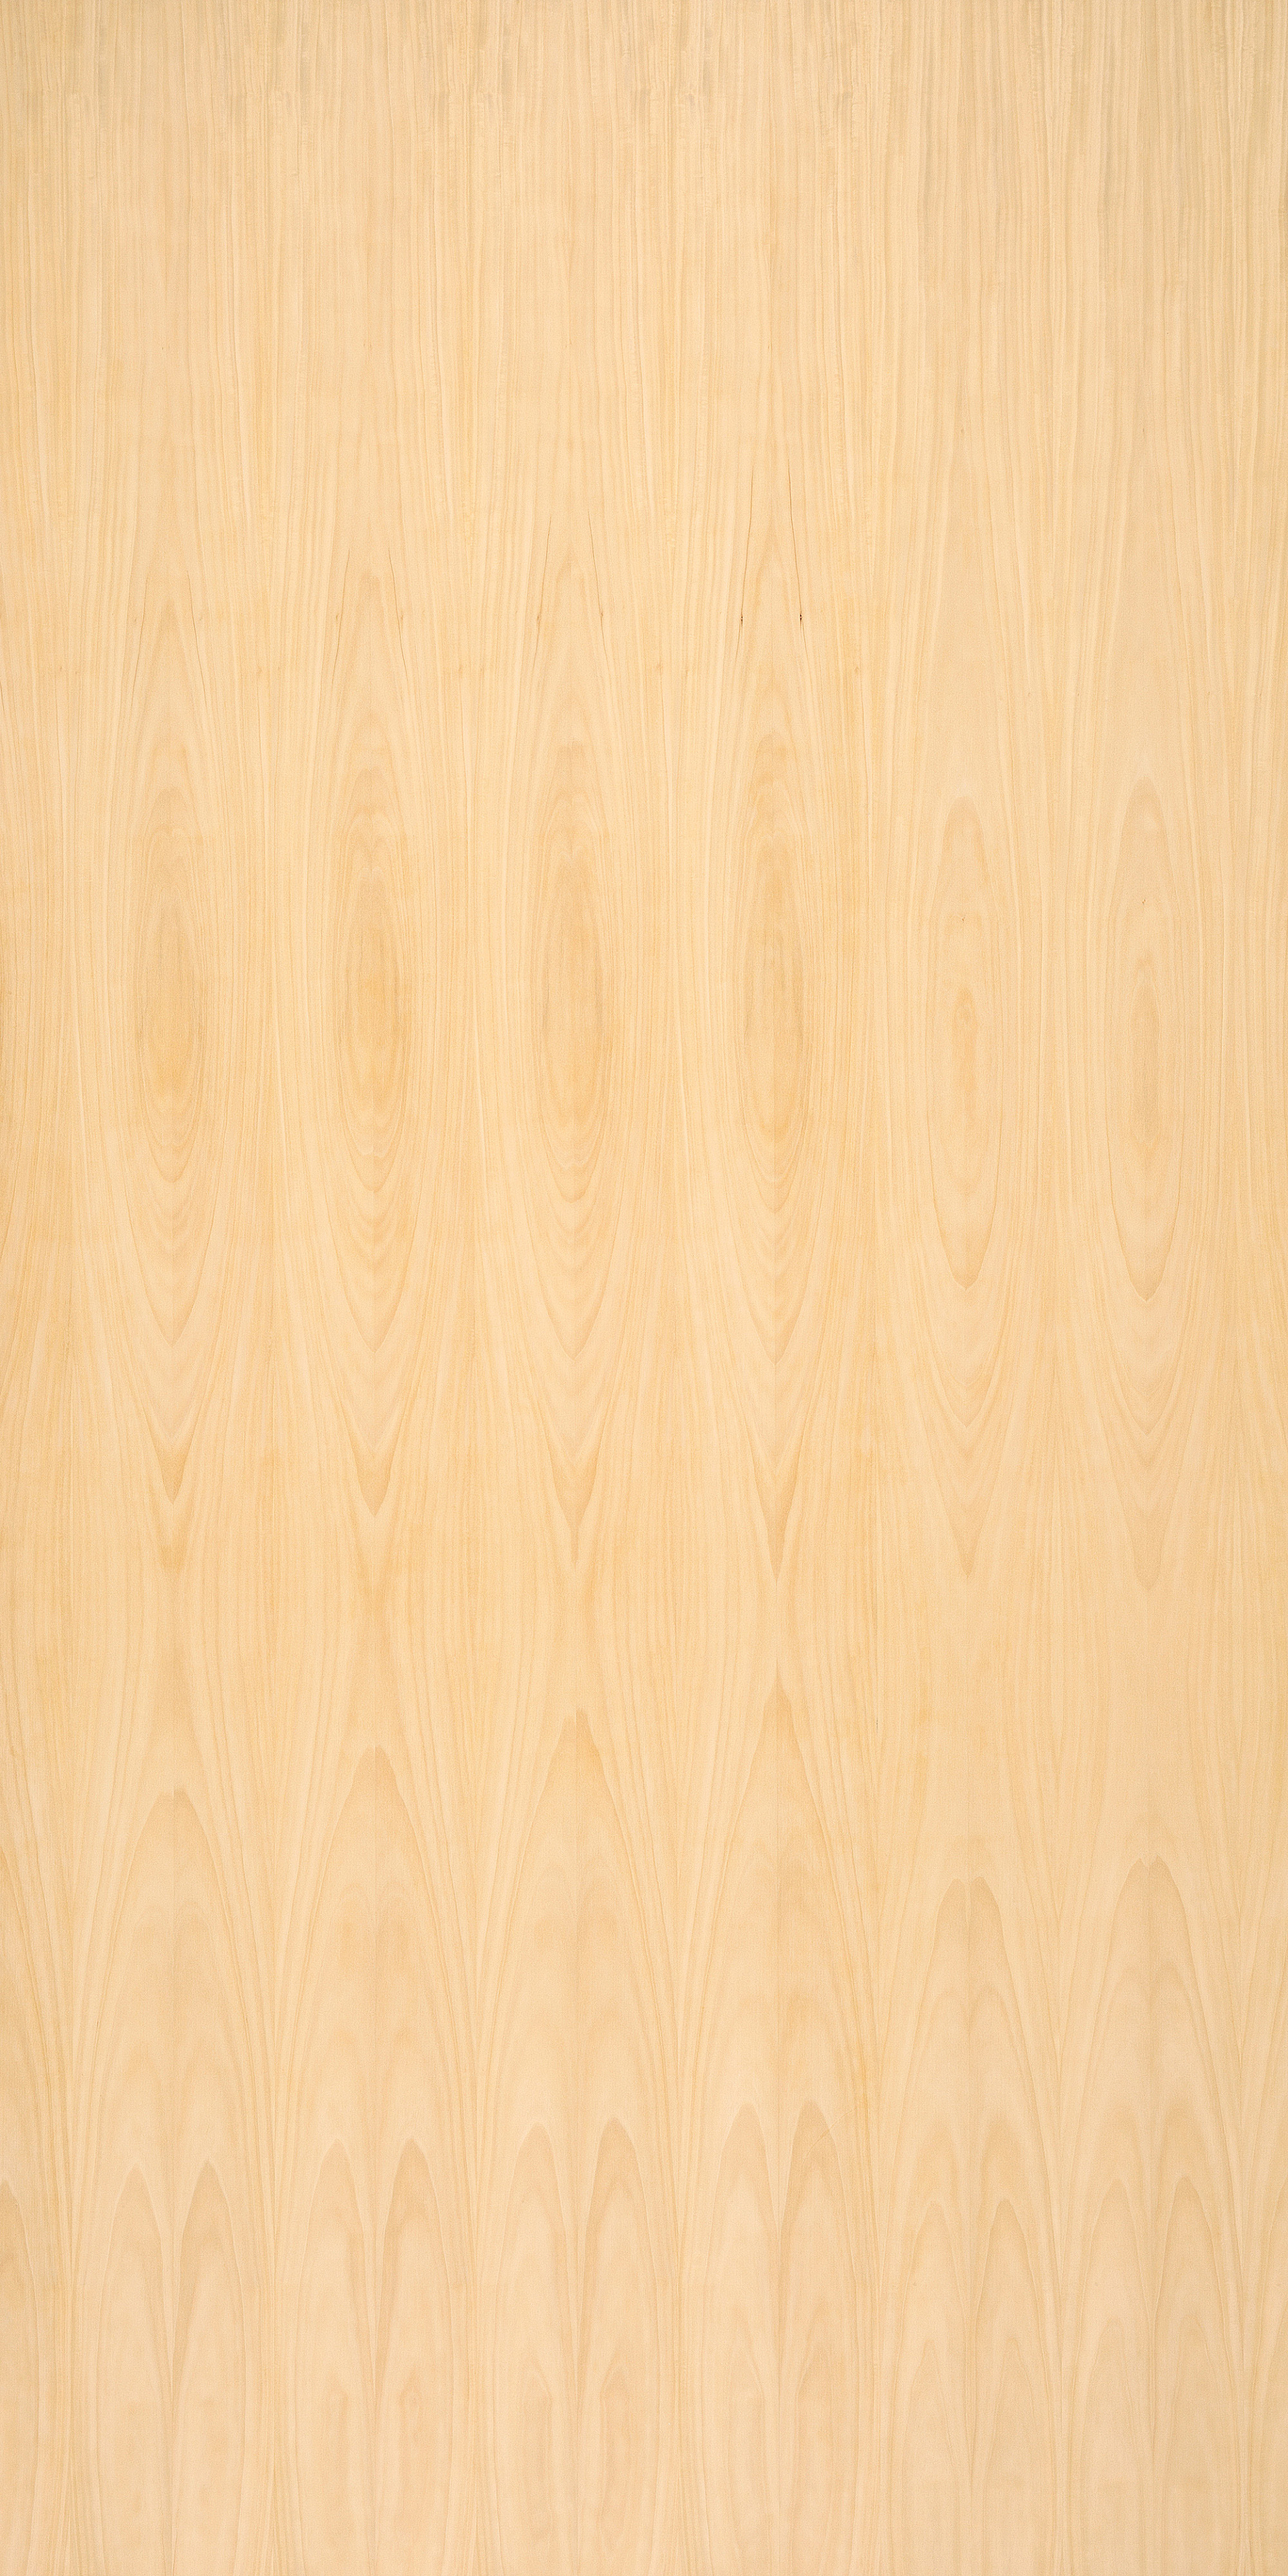 satinwood quartercut 2440x1220